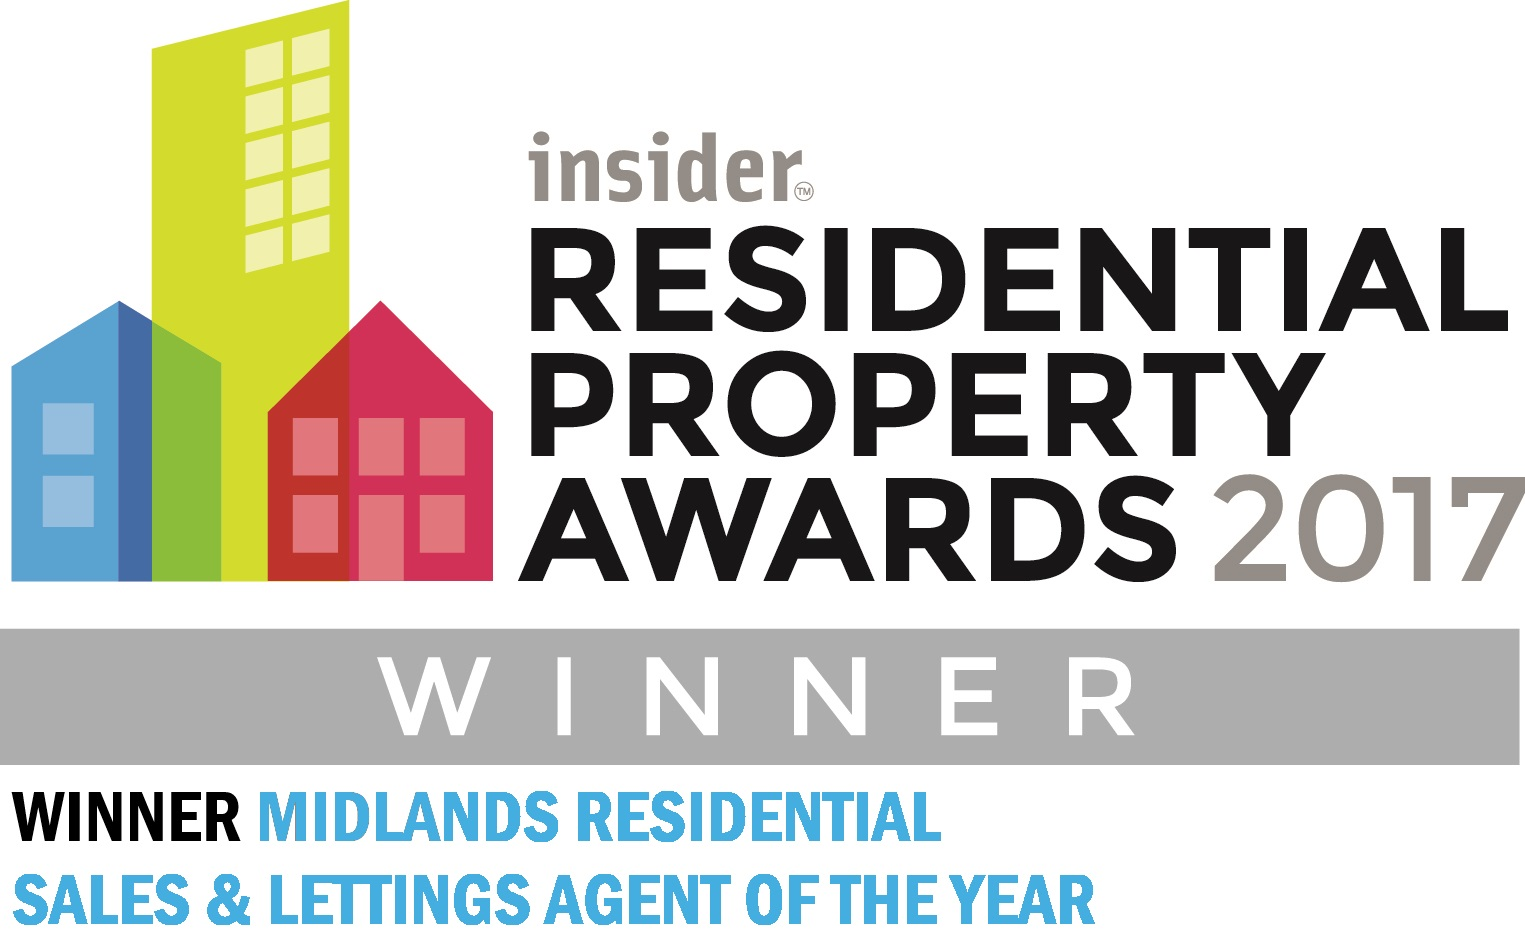 Residential Property Awards 2017